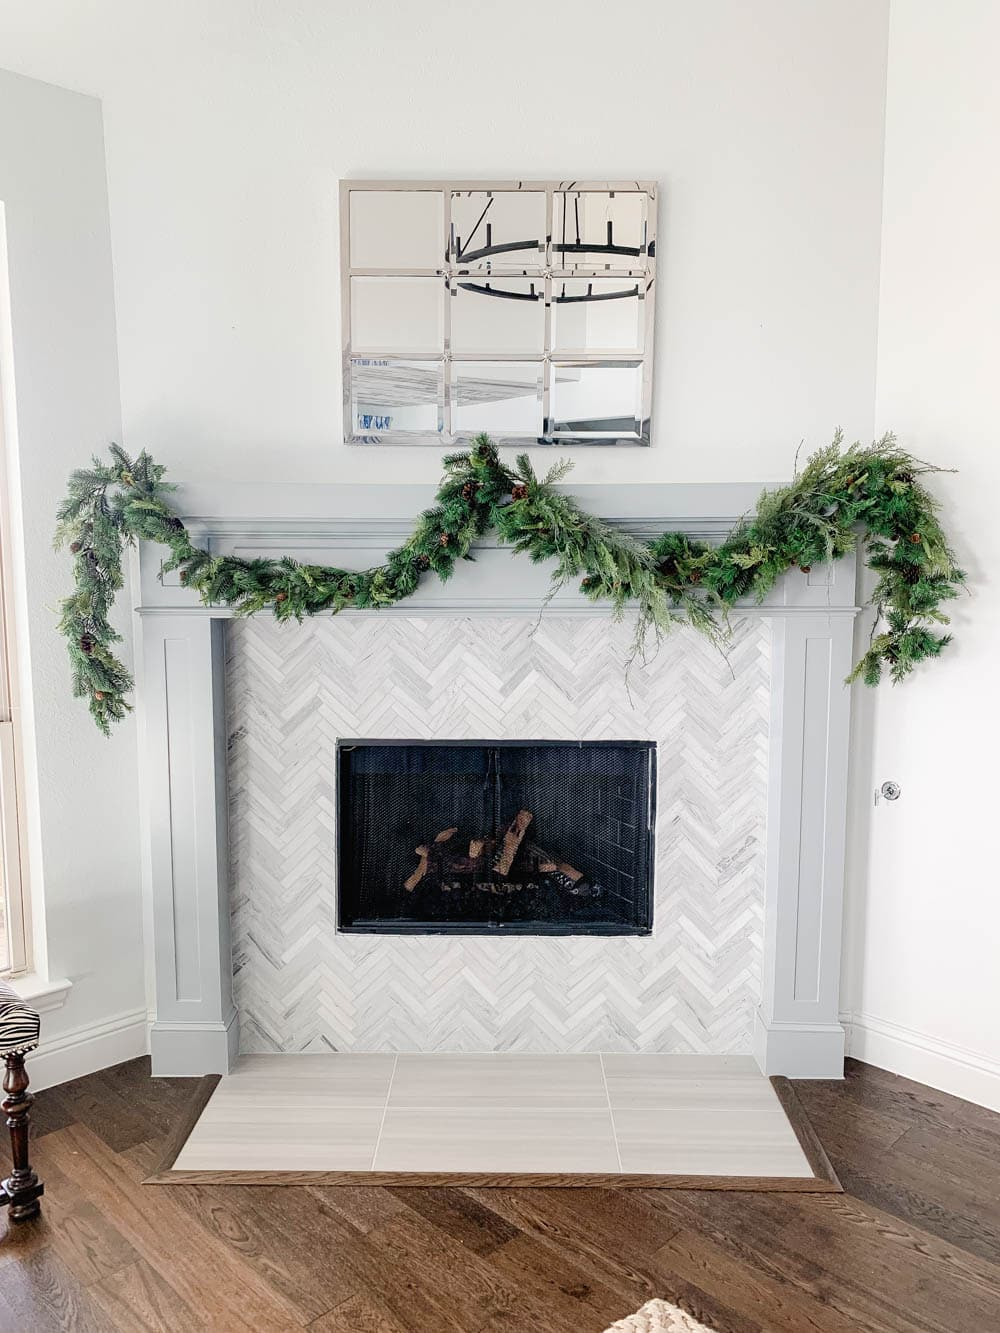 Get my tips to hang your garland for the holidays without damaging your walls! #ABlissfulNest #christmasdecor #christmasmantle